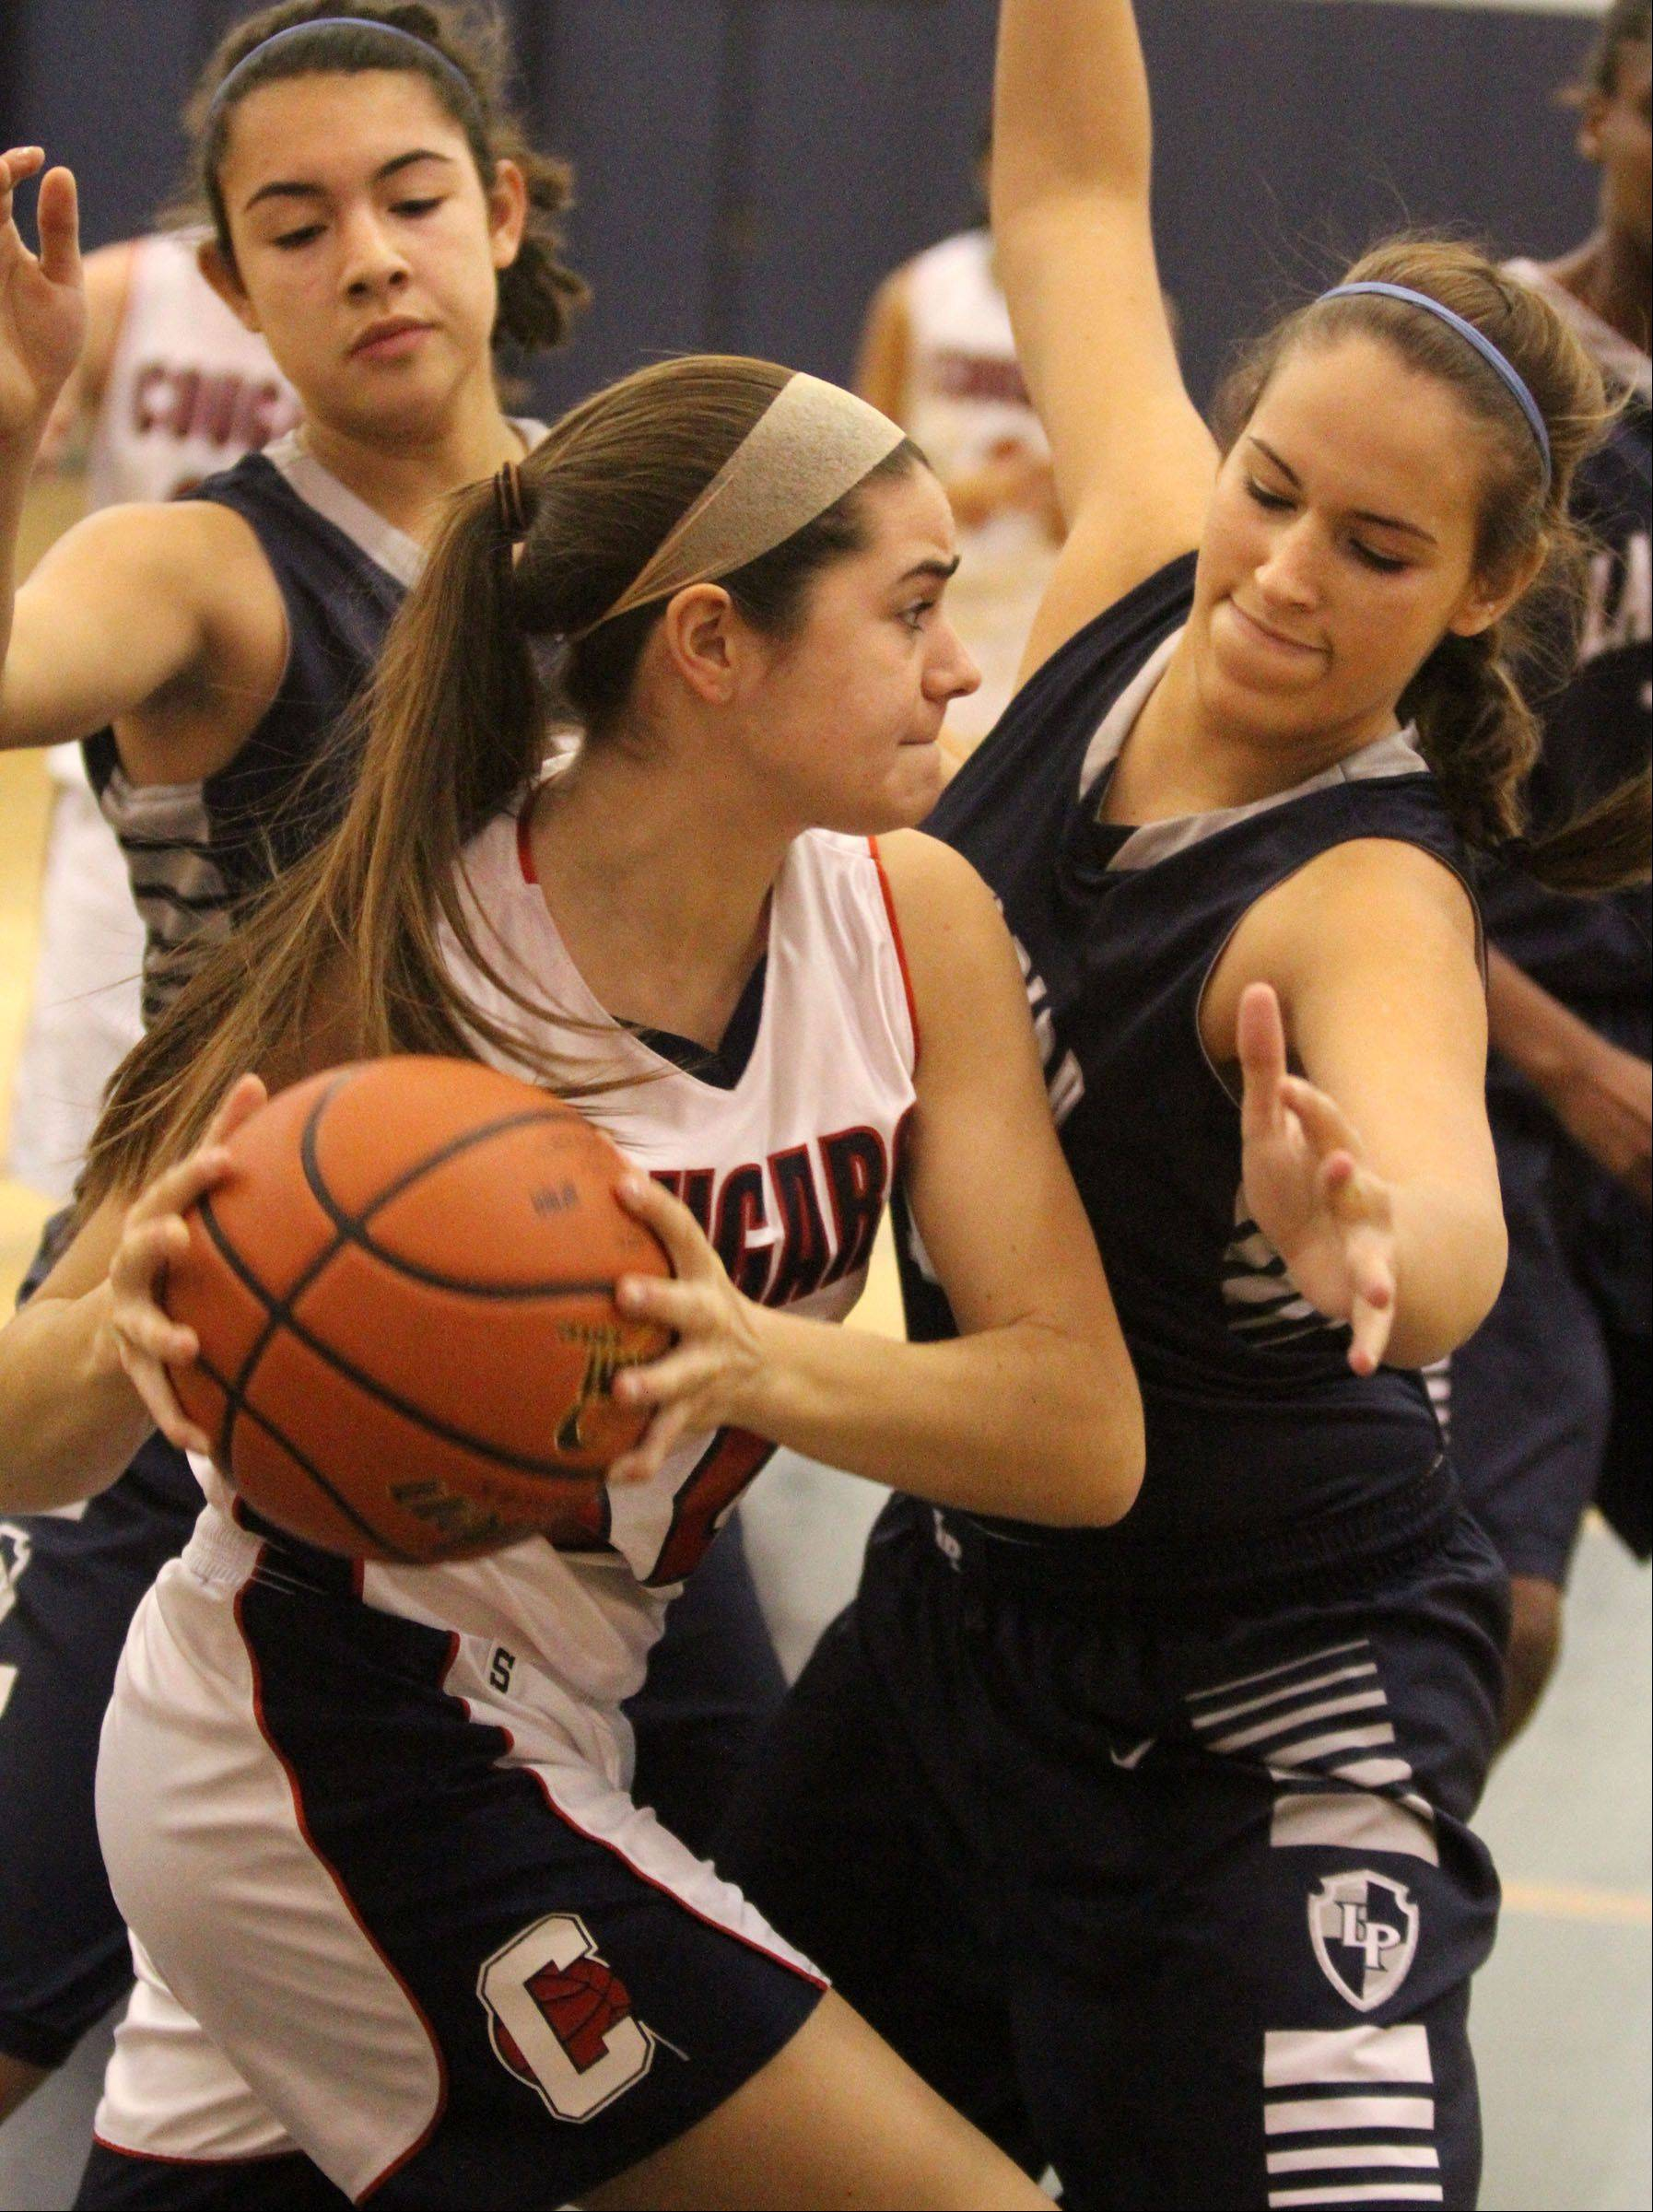 Conant's Morgan Retzer looks to pass while defedned by Lake Park's Maria Zepeda, left, and Kaley Noonan Saturday in Hoffman Estates.